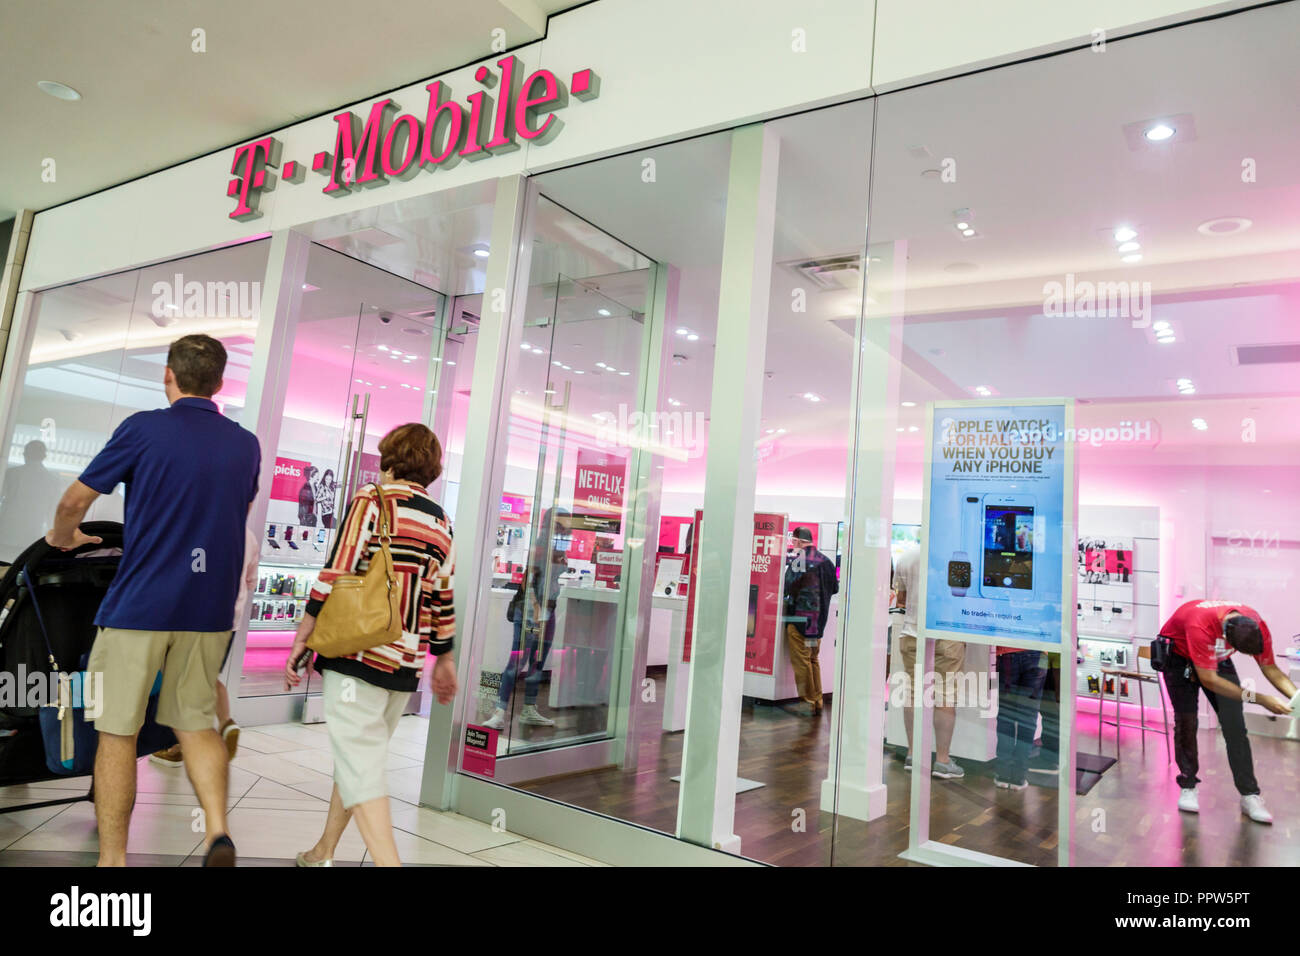 Miami Florida Kendall Dadeland Mall shopping T-Mobile store front entrance wireless network carrier business smartphones plans - Stock Image